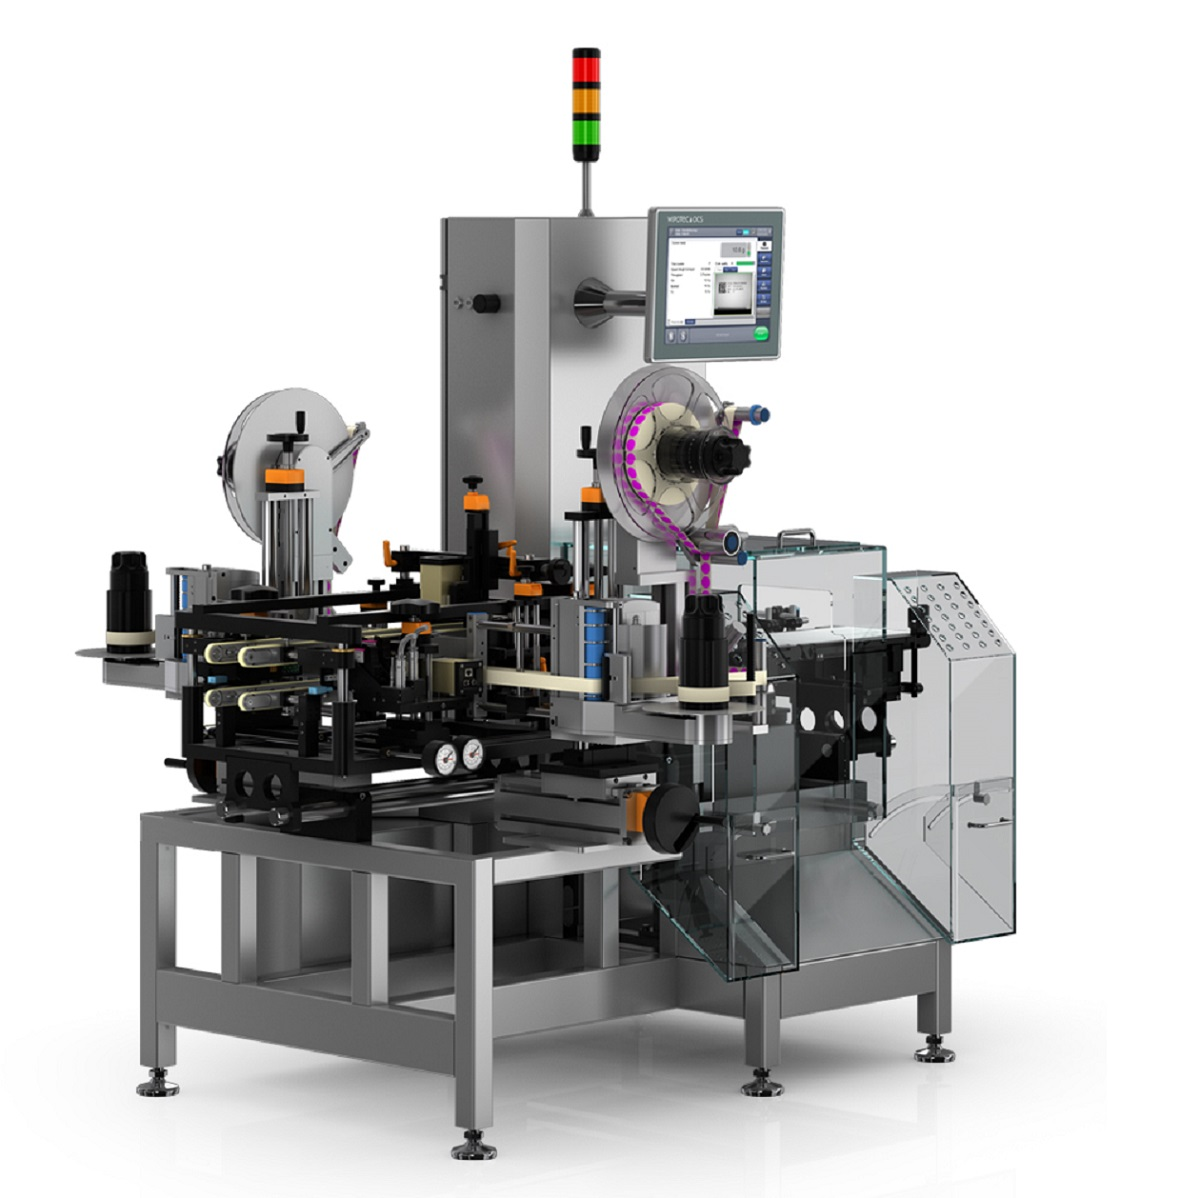 Die kompakteste All-in-One-Serialisierungsmaschine der Welt